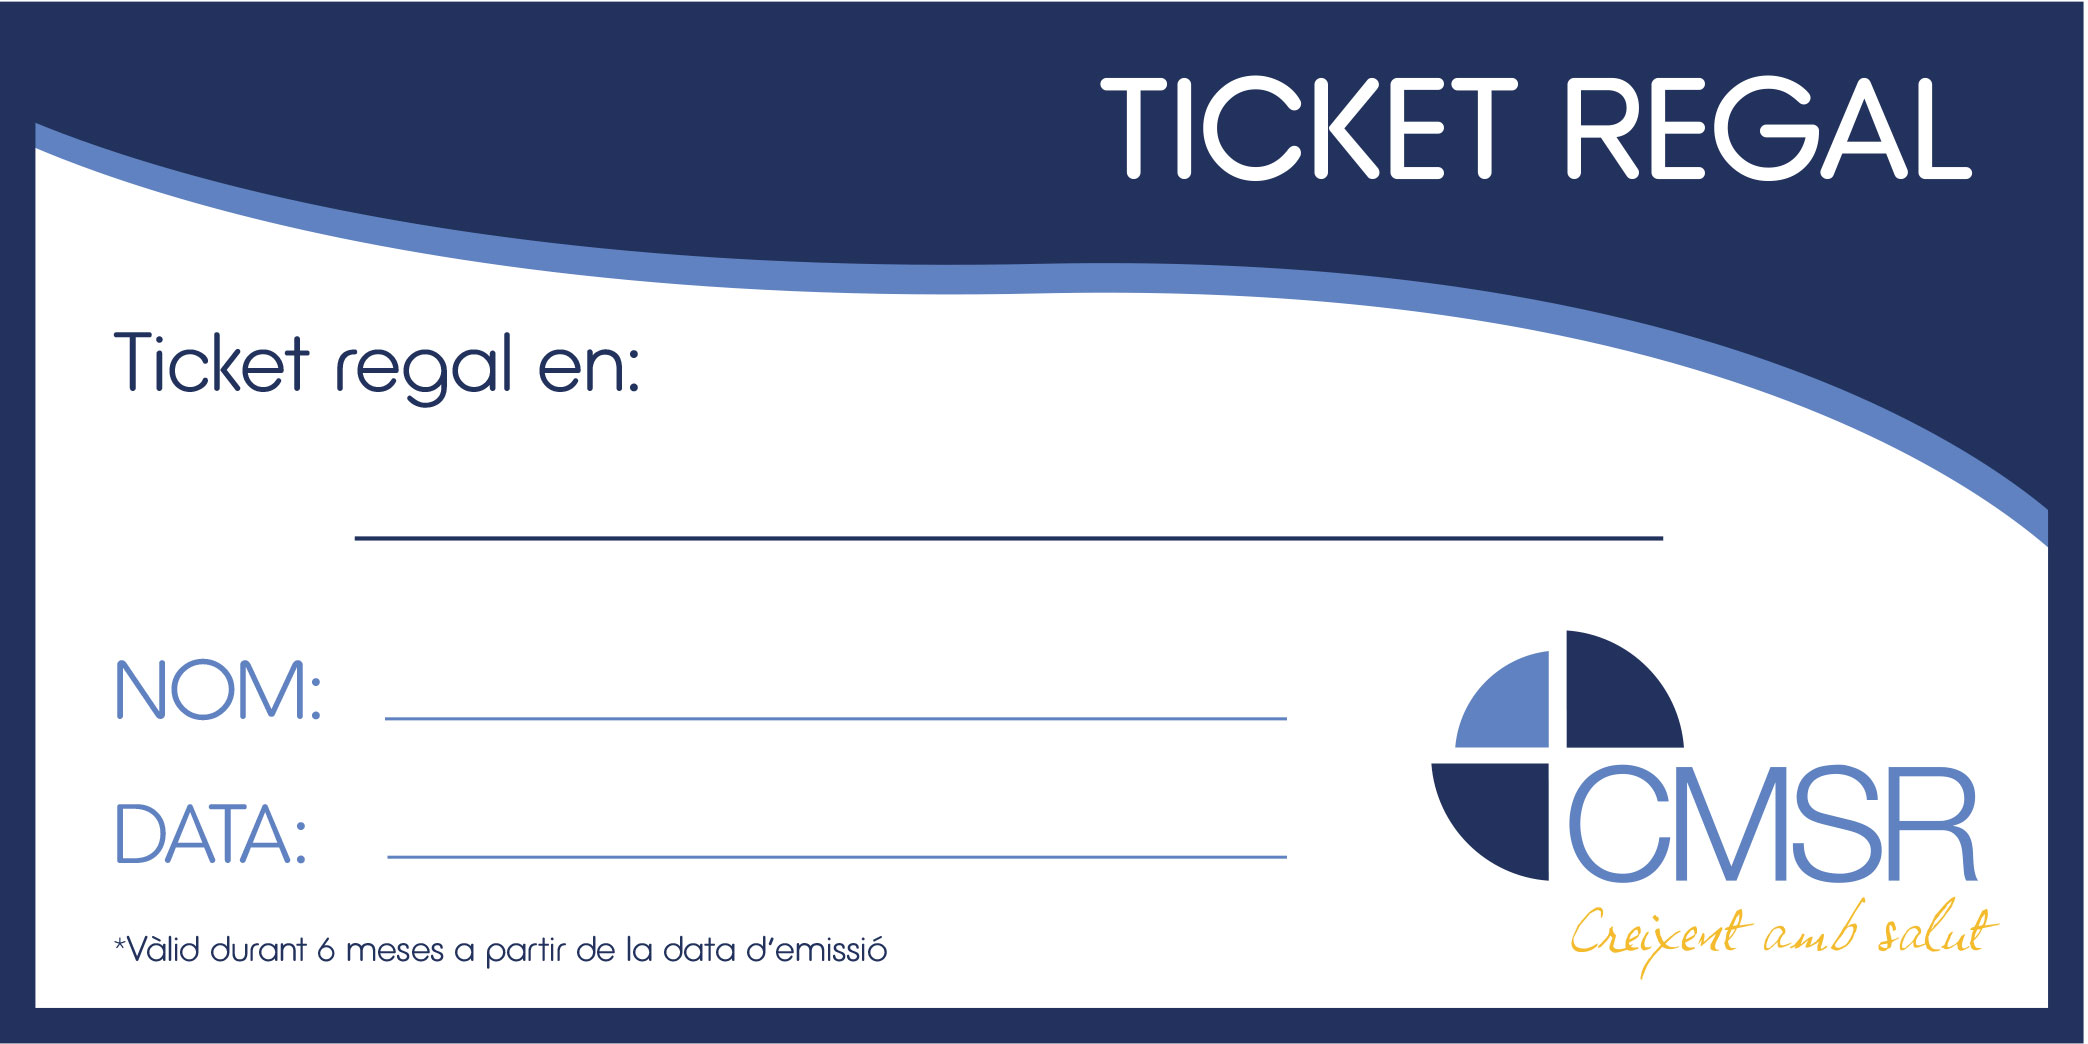 TICKET-REGALO